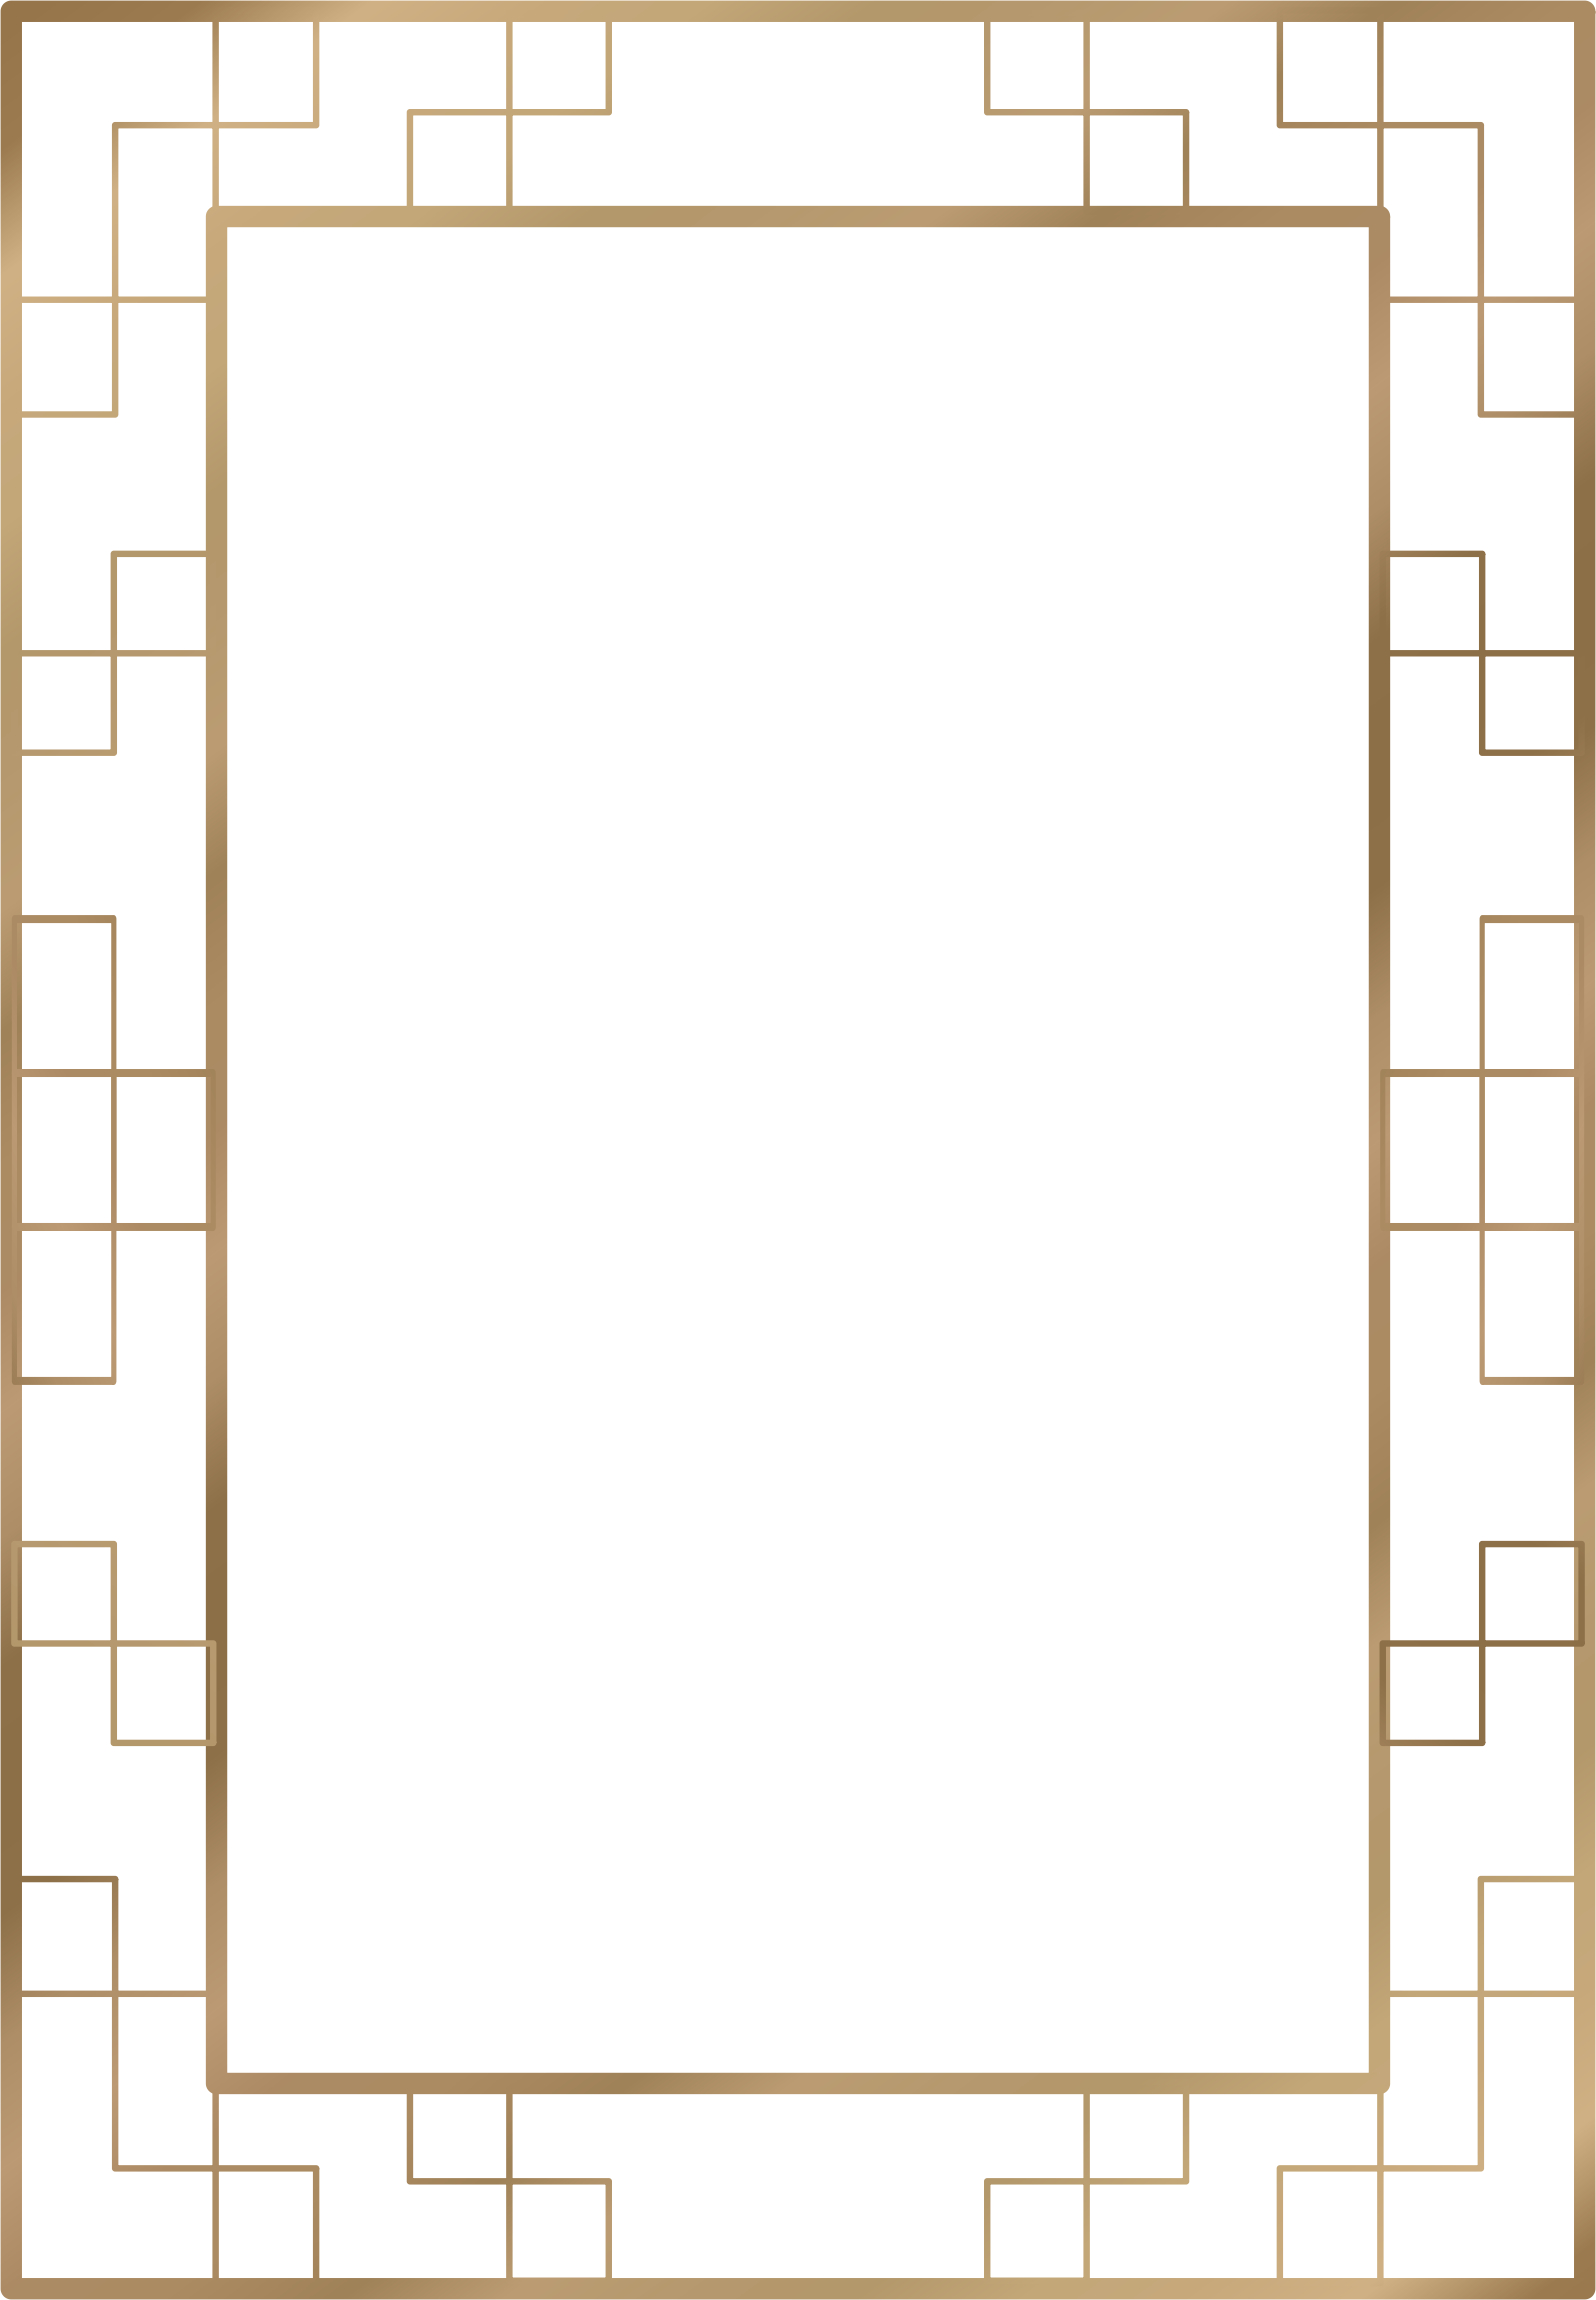 Download Art Deco Border Png Art Deco Page Border Full Size Png Image Pngkit View 1,000 art deco border illustration, images and graphics from +50,000 possibilities. download art deco border png art deco